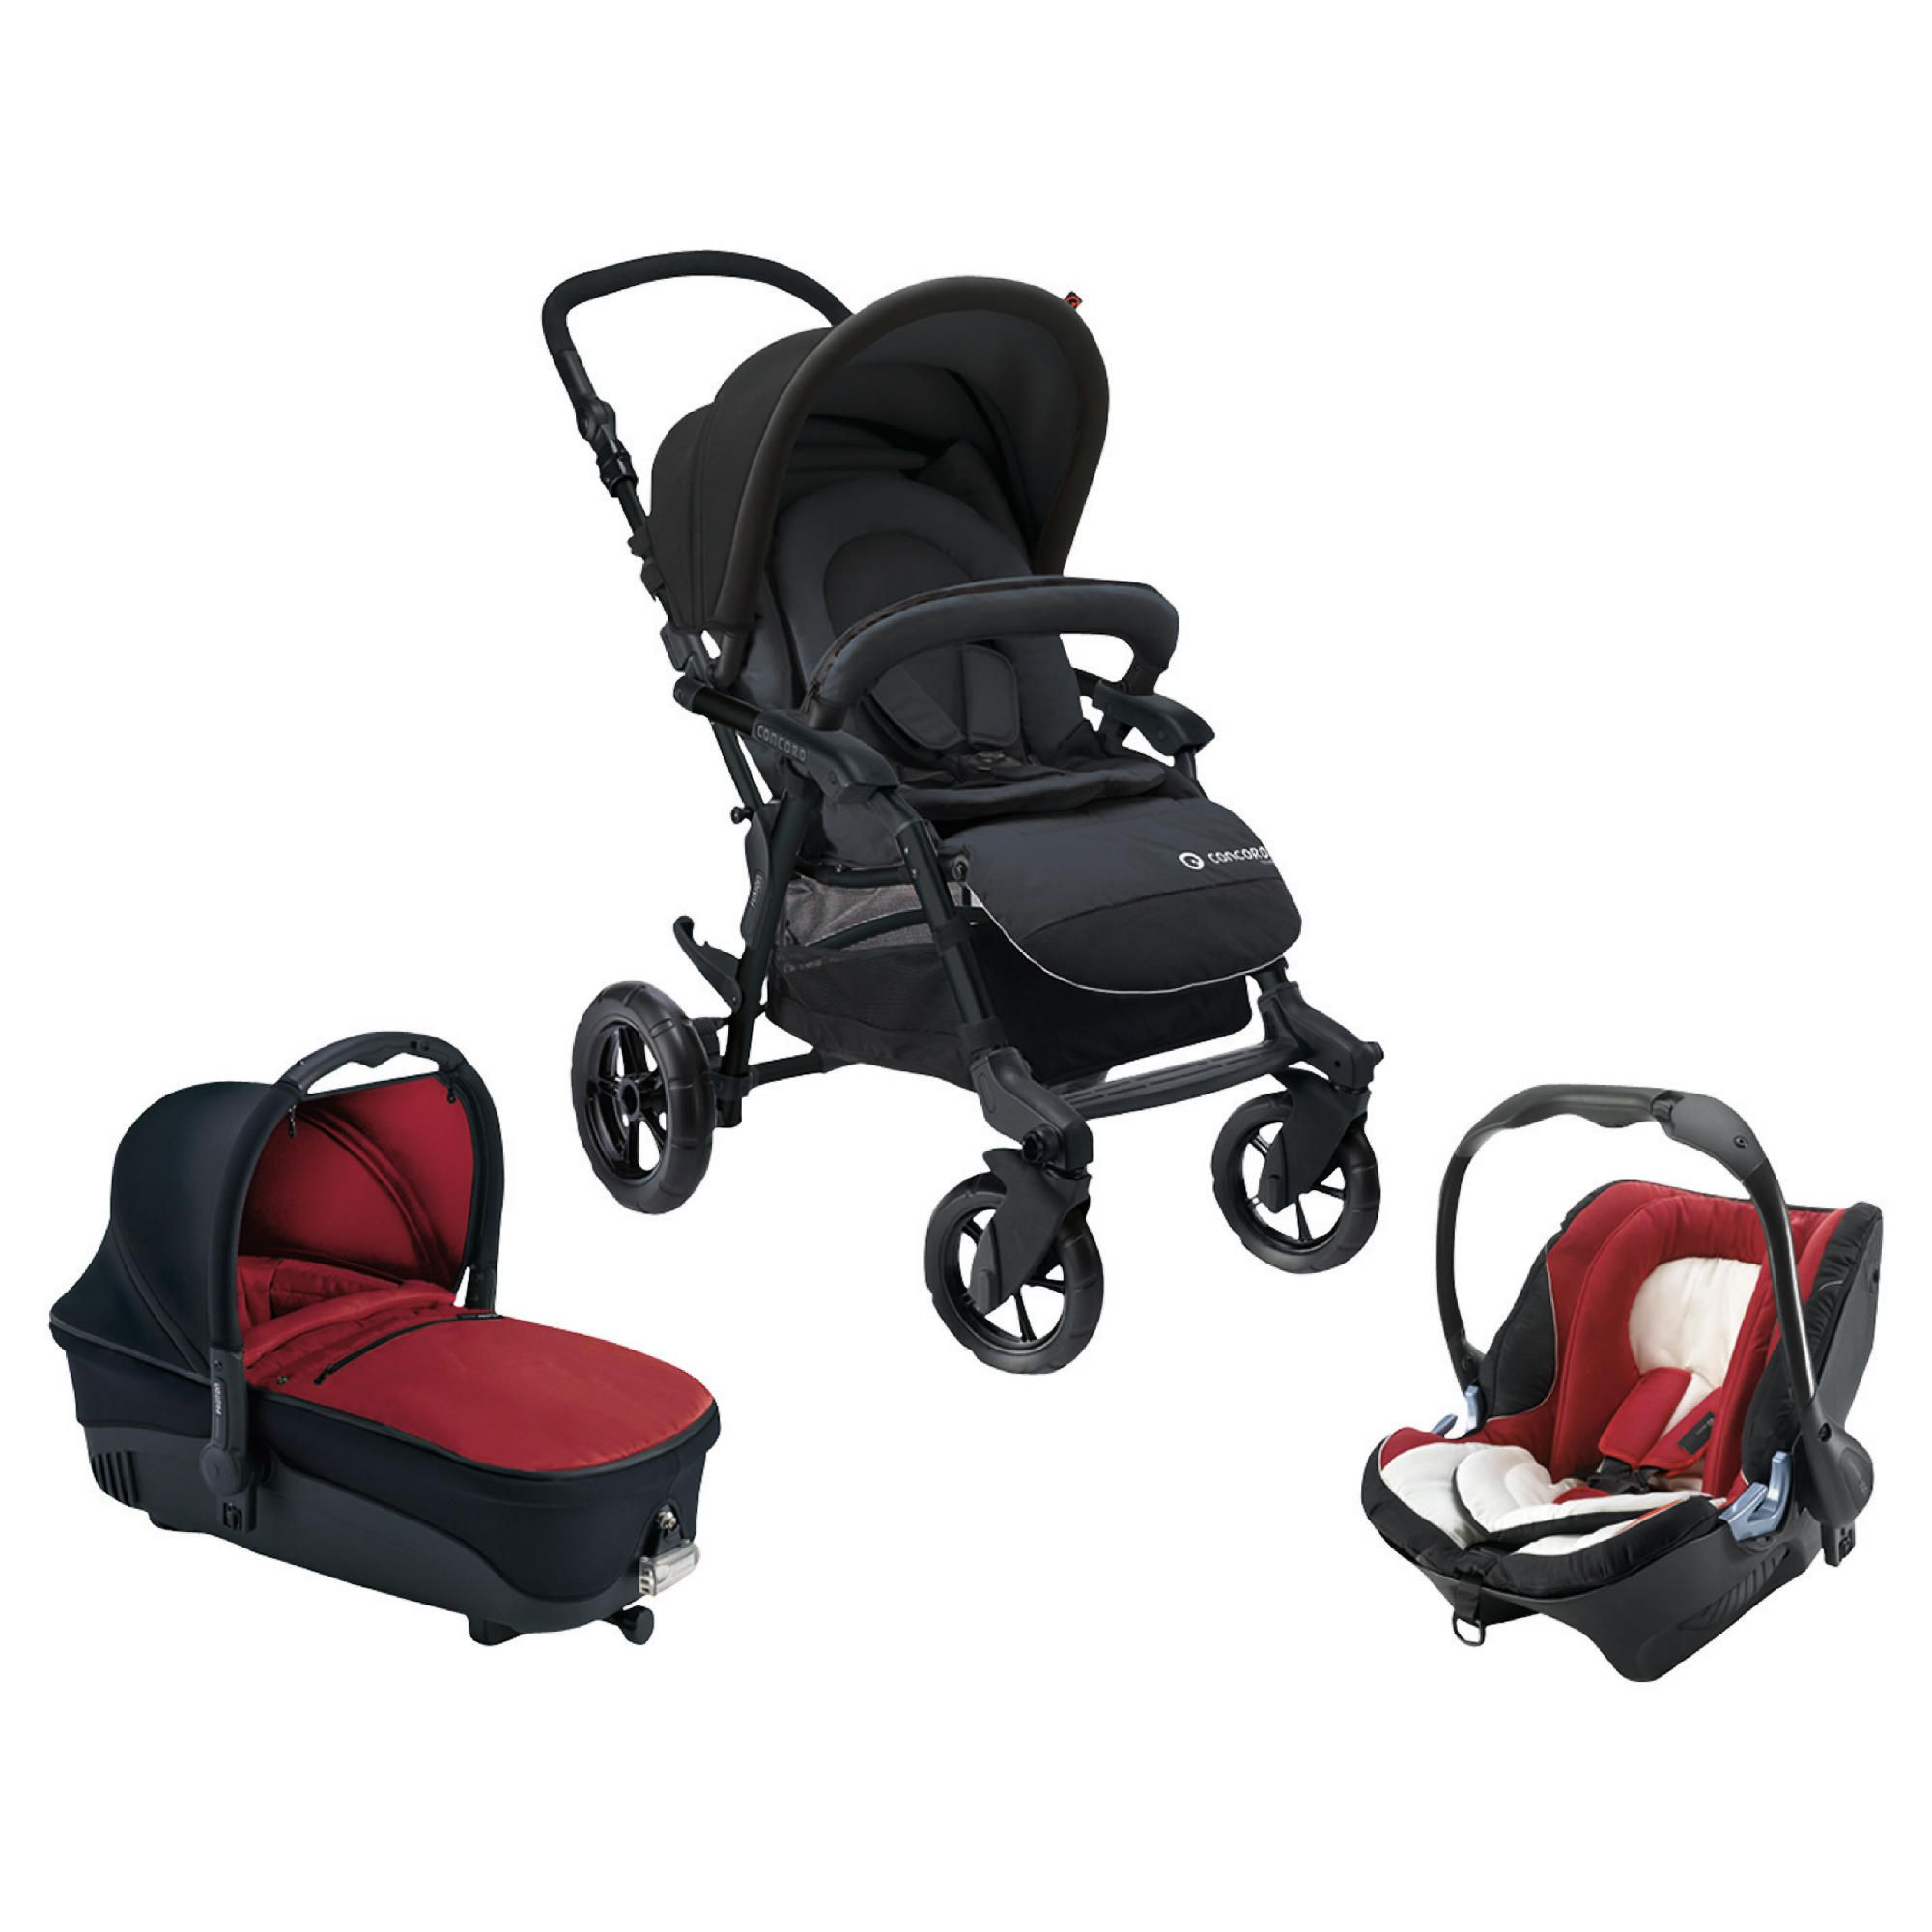 Concord Fusion Travel System, Black & Red at Tesco Direct